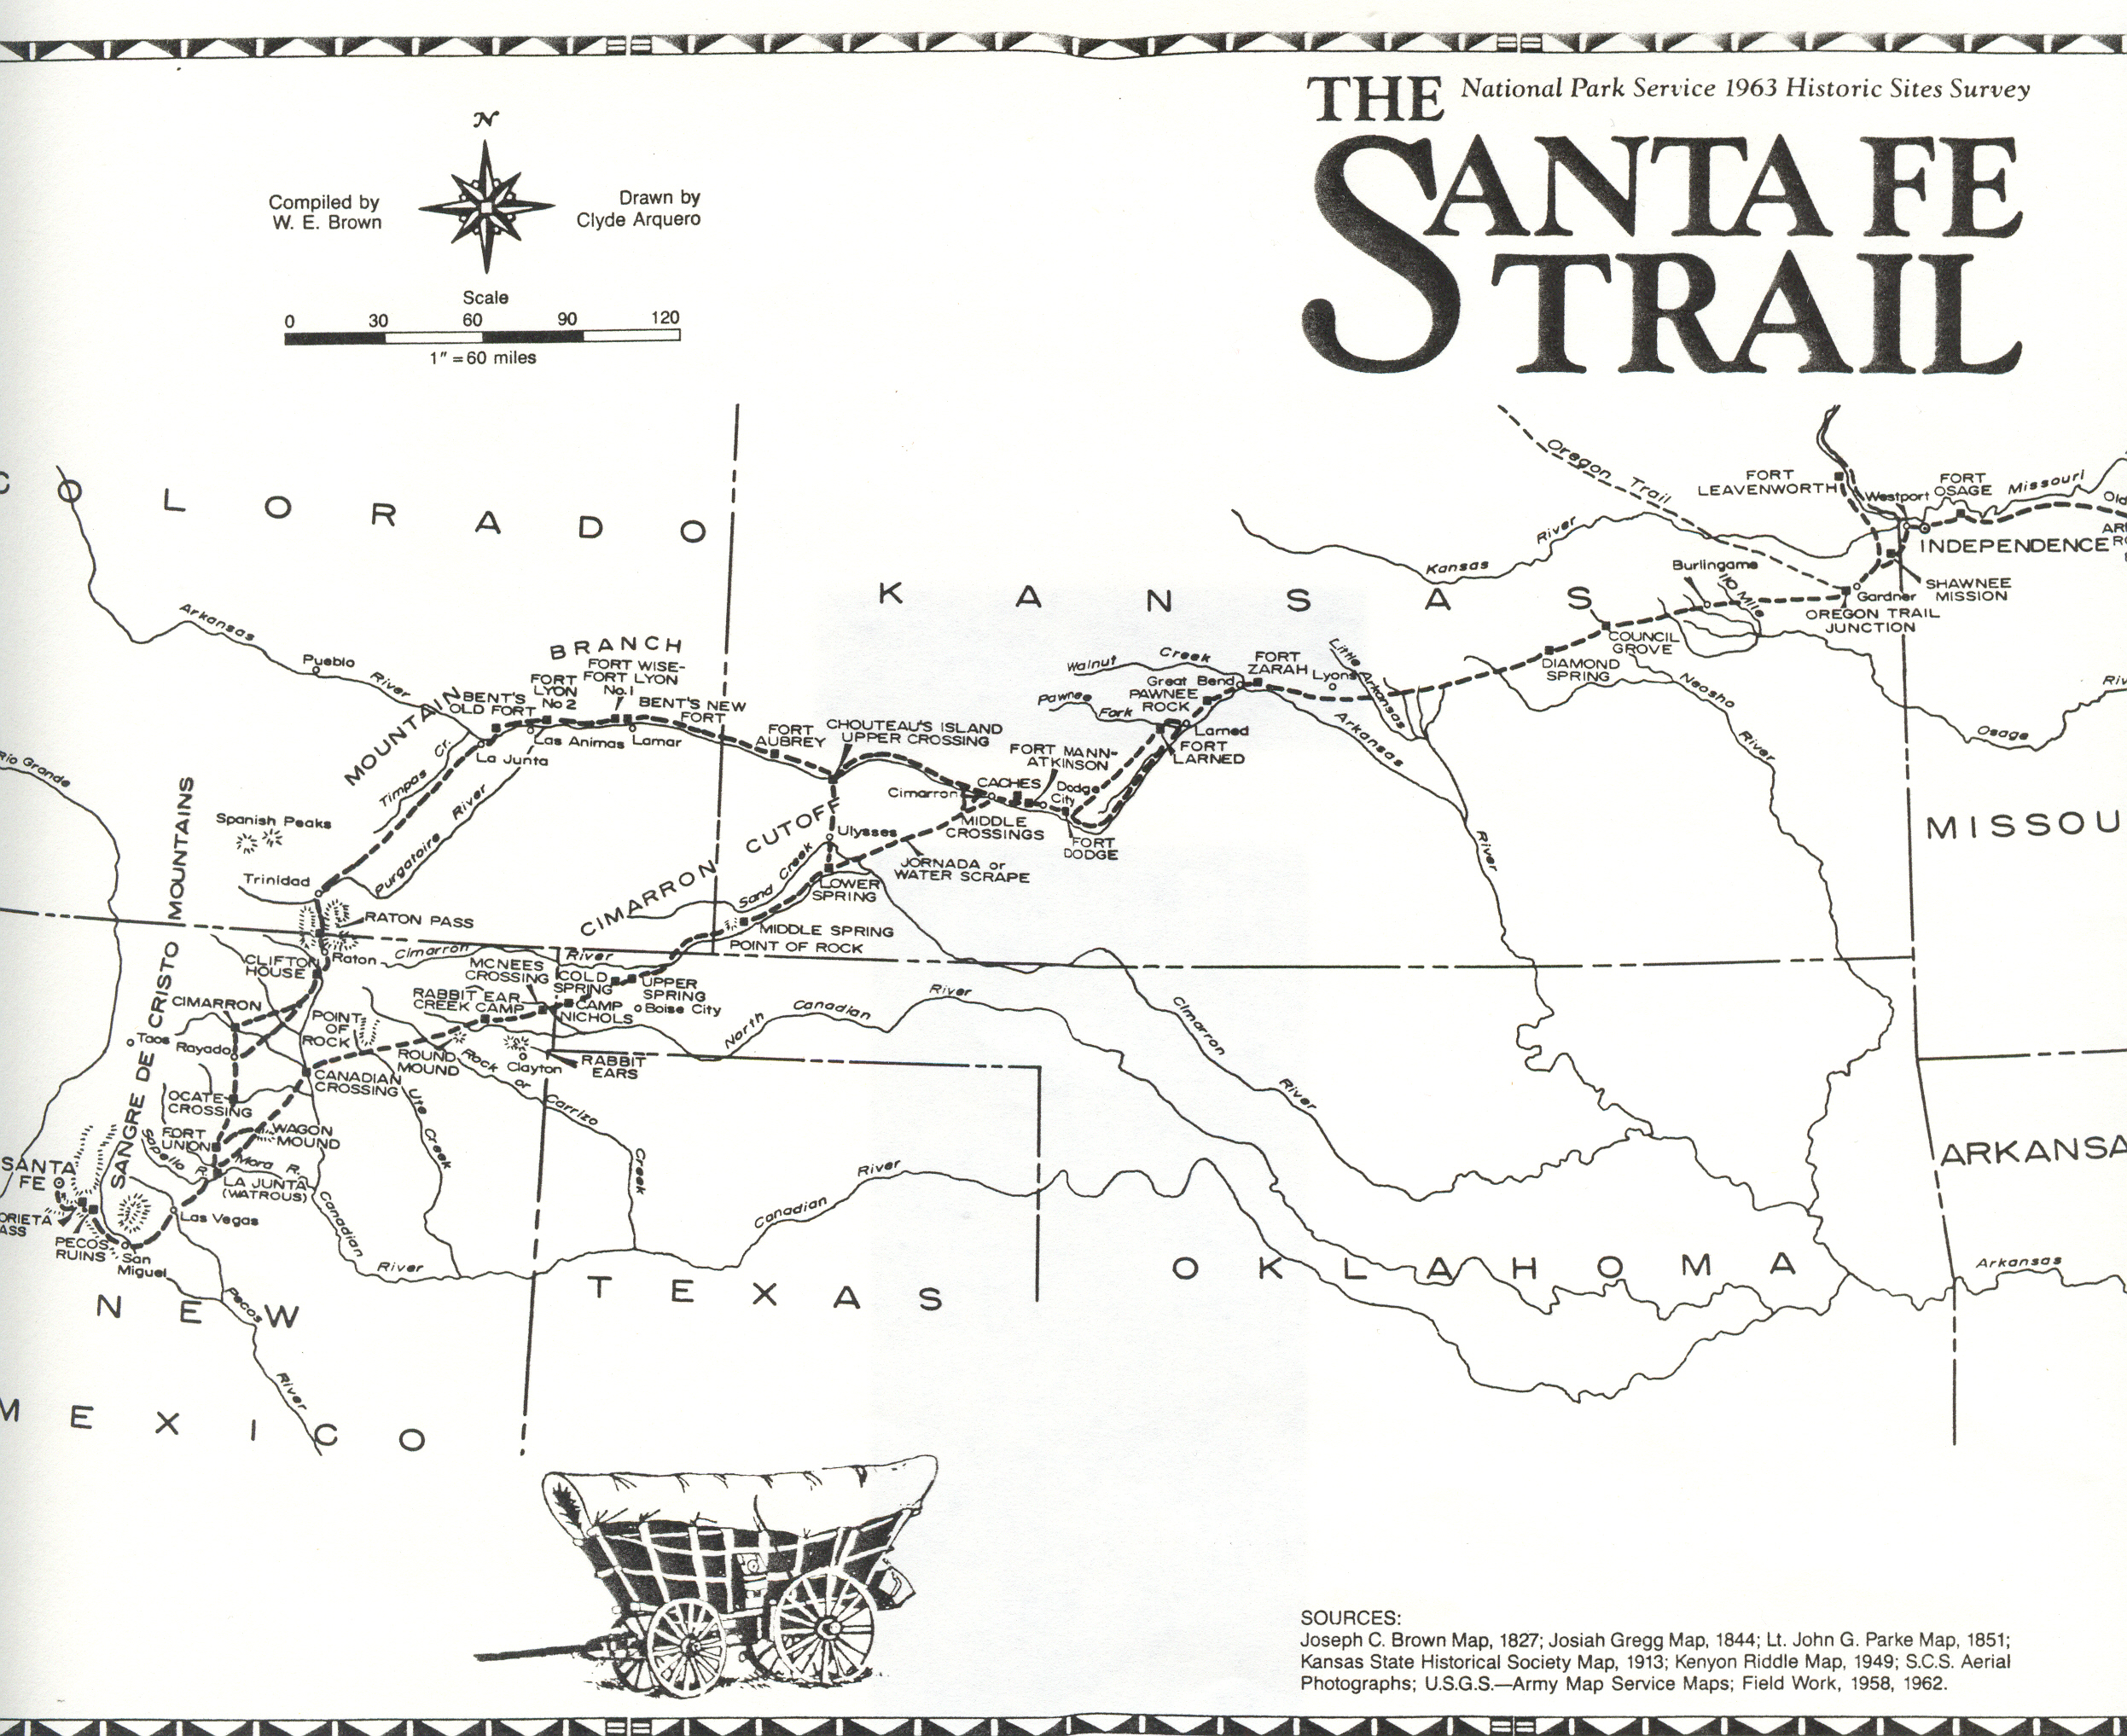 Santa fe trail map see map details from jocohistory org created 1827